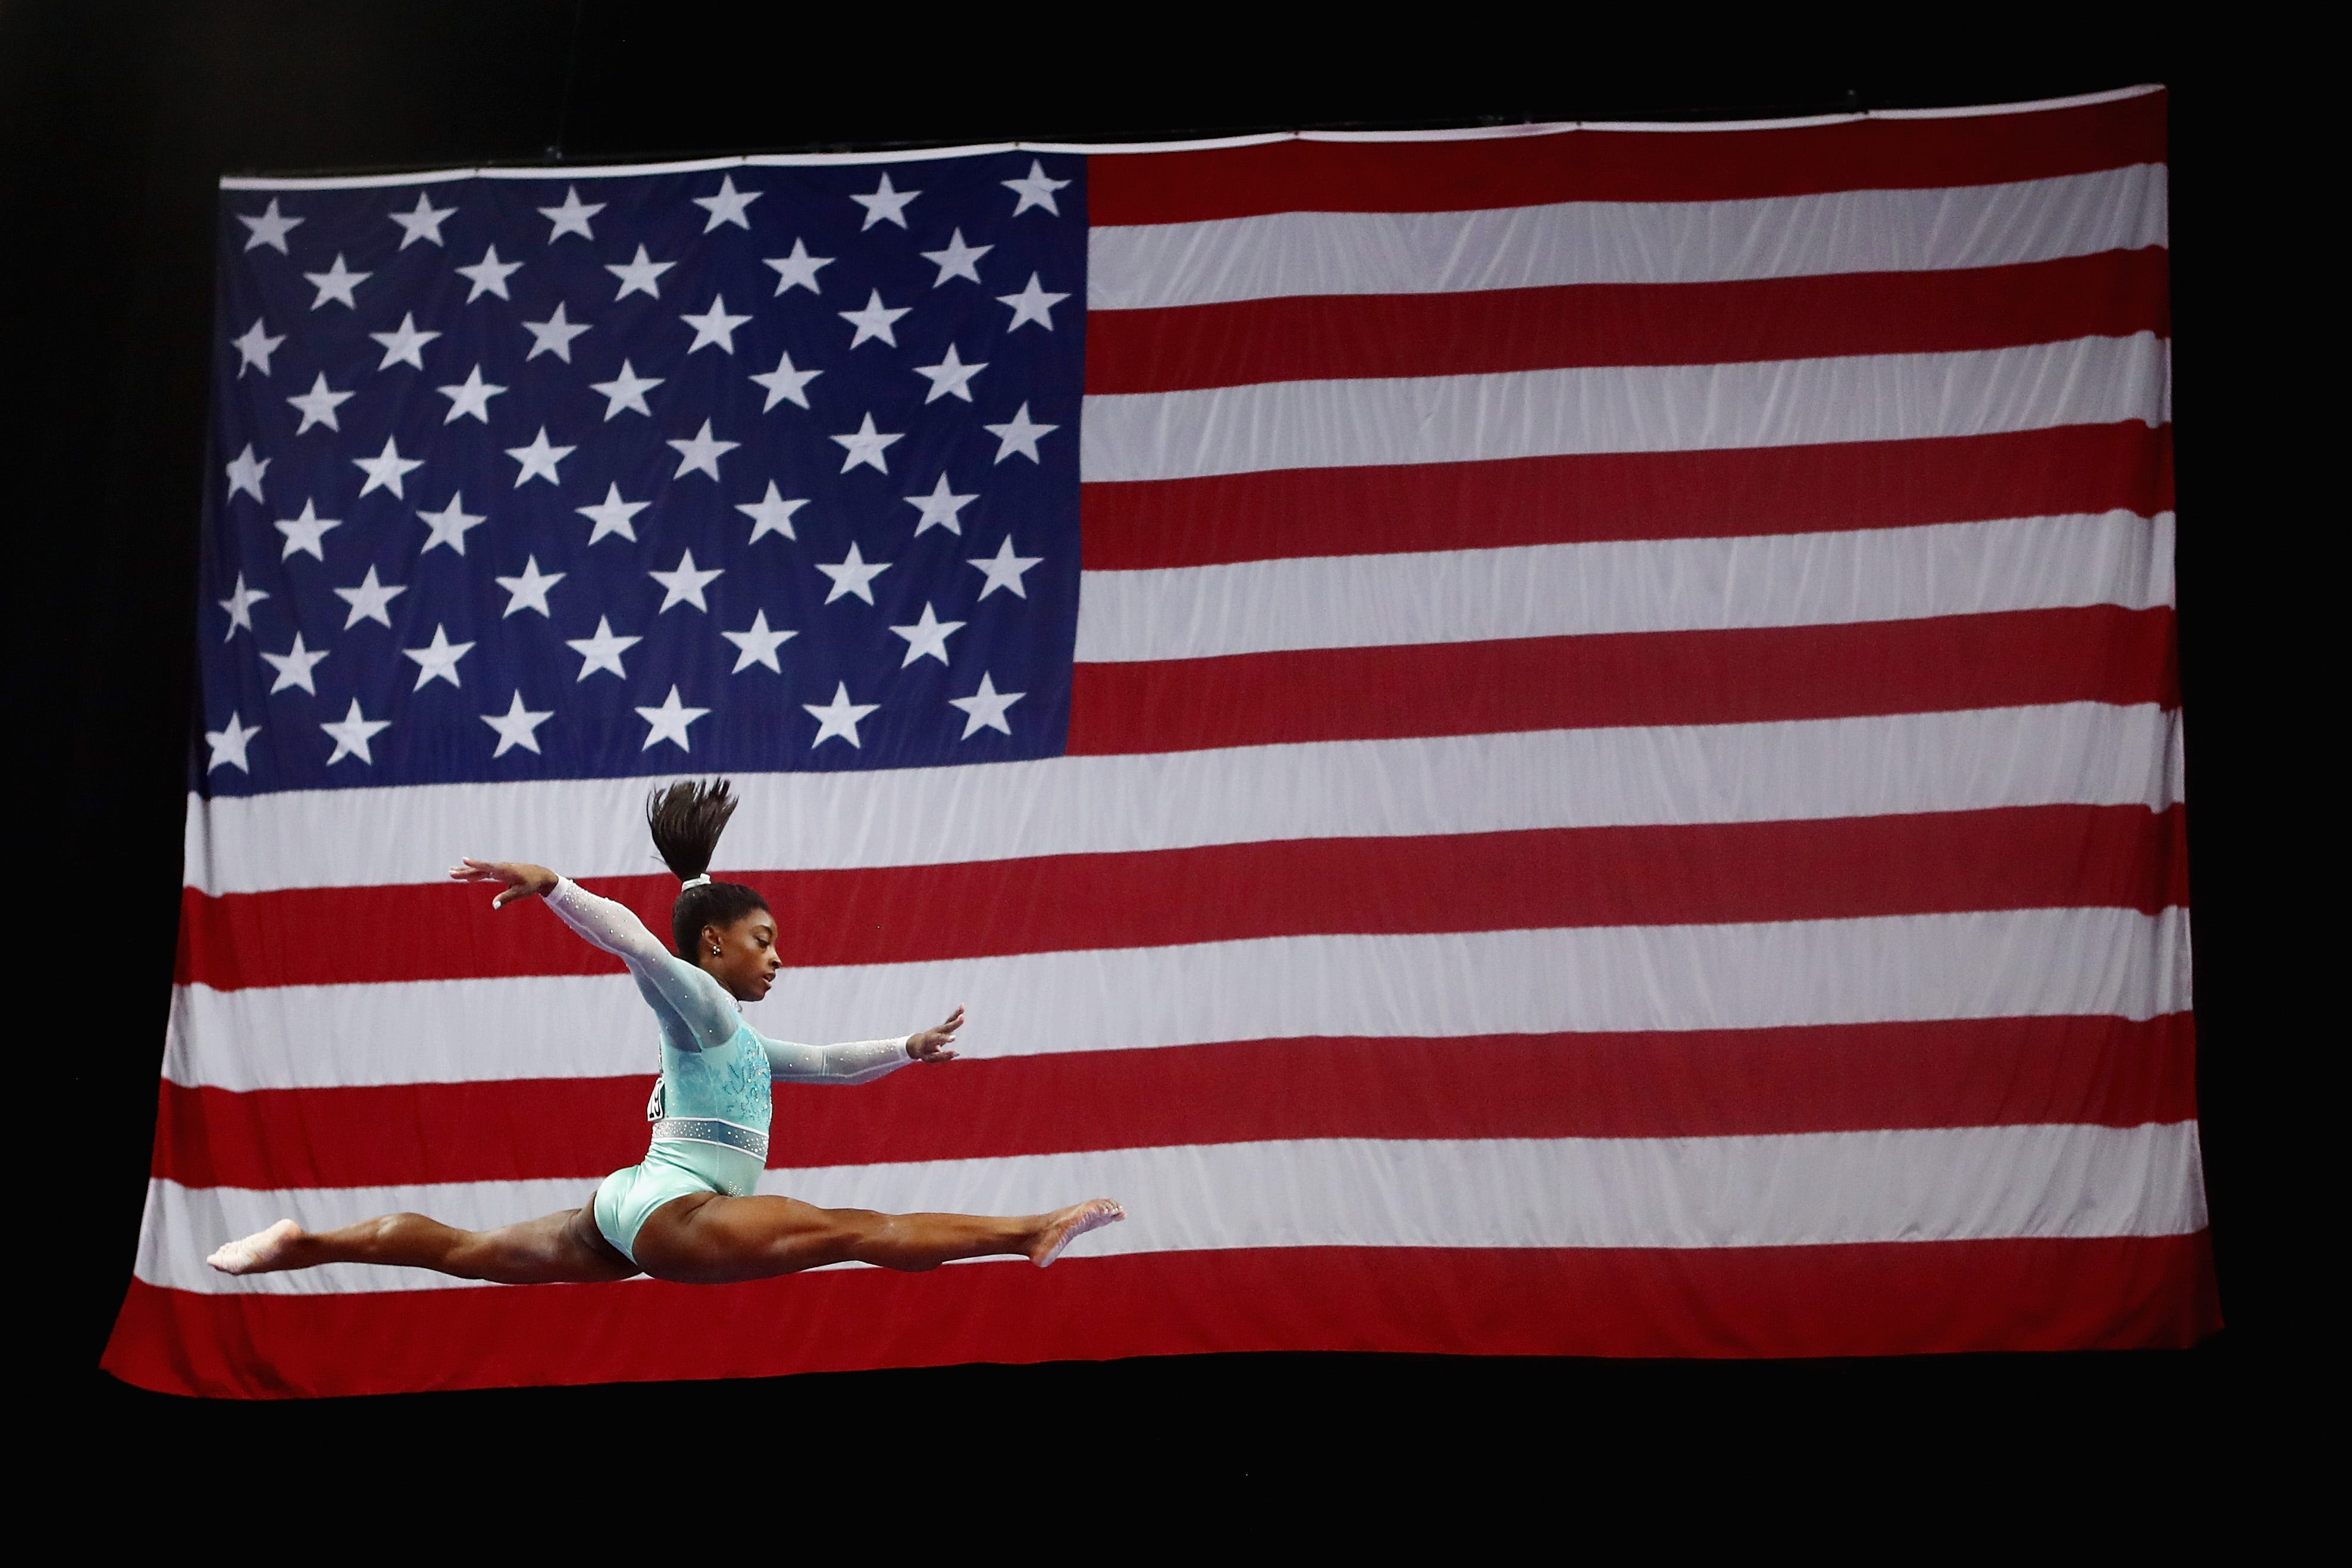 best service 6e51e f33ae Whoaposs to blame for inability to clean up USA Gymnastics USA Gymnastic  Kerry Perry is out after she was charged with fixing the organization in  the ...